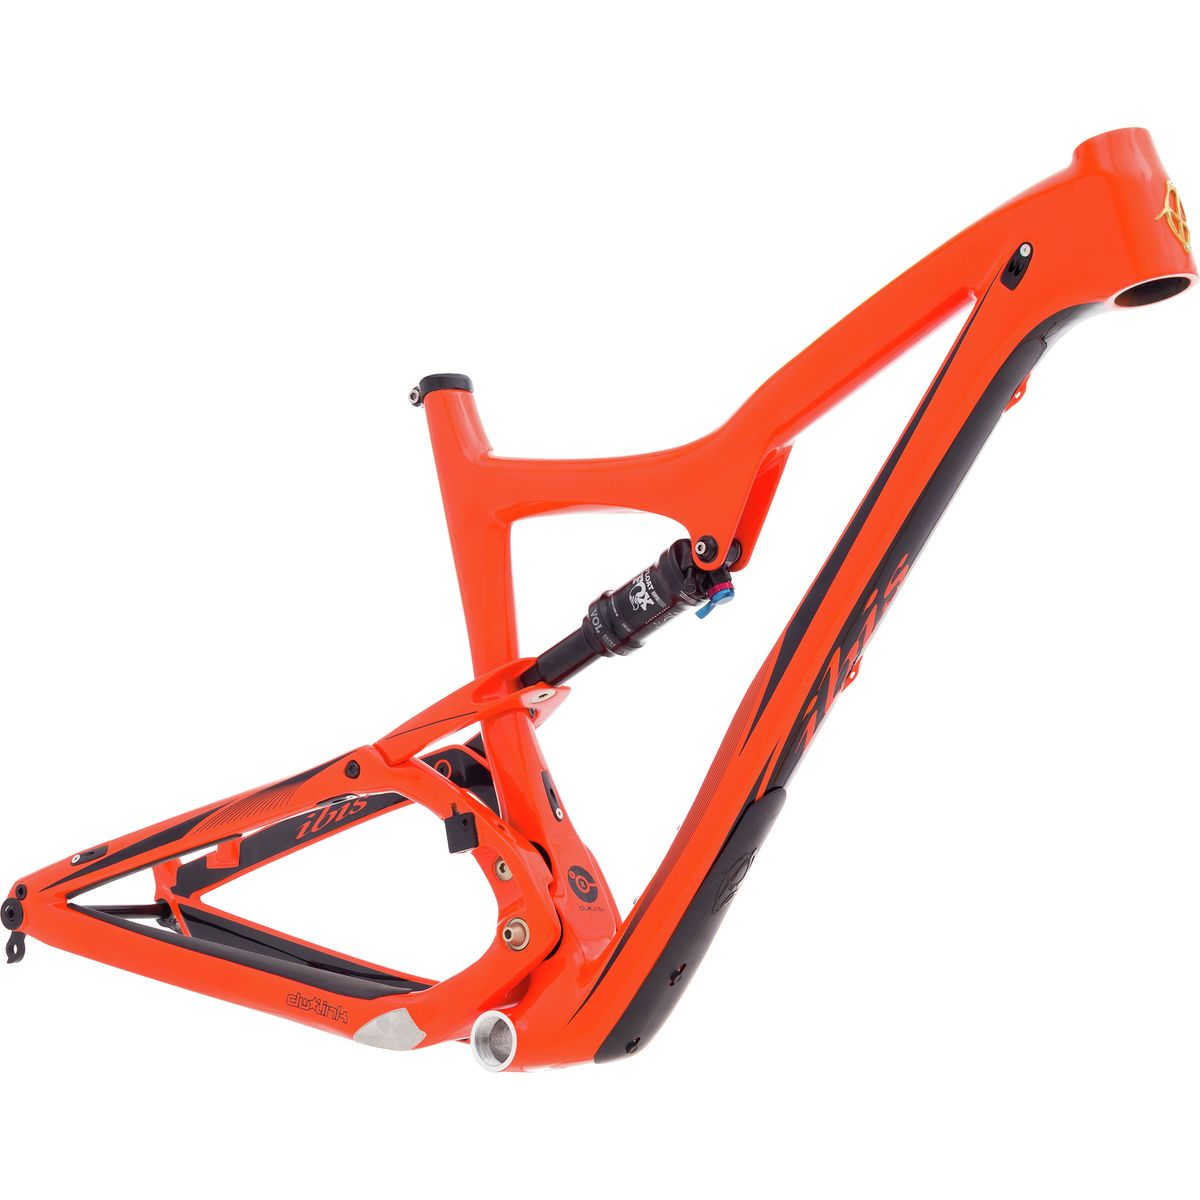 Ibis Ripley LS Carbon Mountain Bike Frame - 2017 | Competitive Cyclist